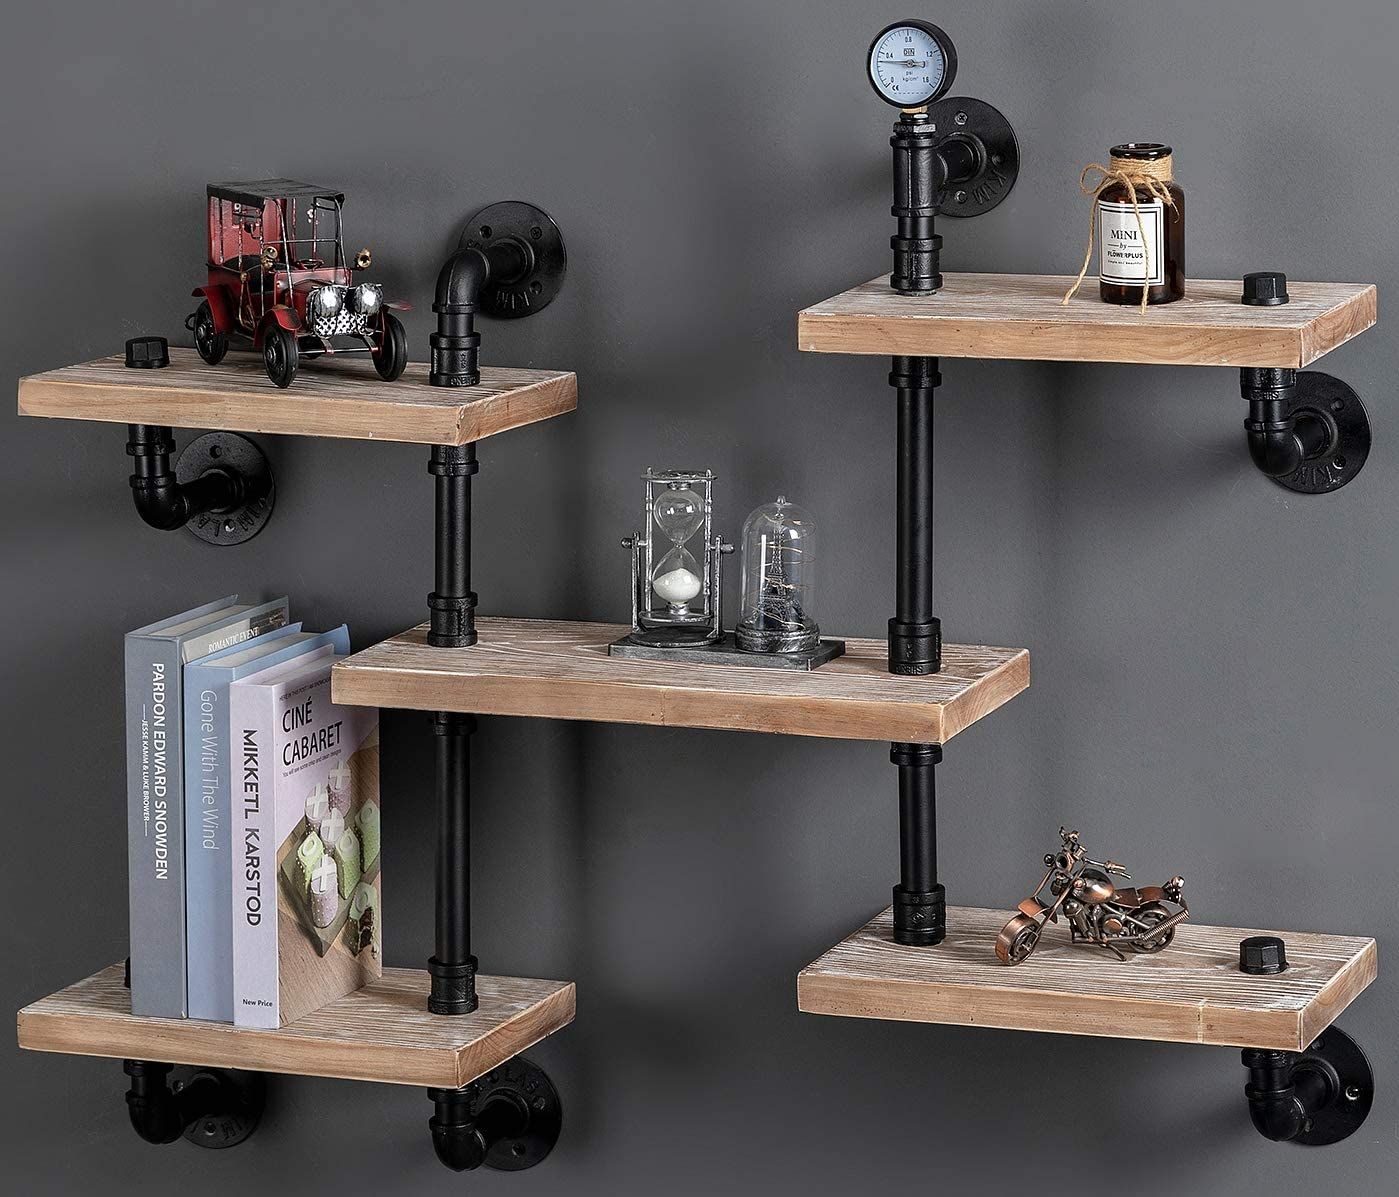 Industrial Floating Pipe Wall Mounted Shelves Rustic Modern Wood Shelving Bookcase 4 Layer Ladder Steampunk Hanging Bookshelf for Home Bathroom Office Decor (5-Tier Ladder Shelves)